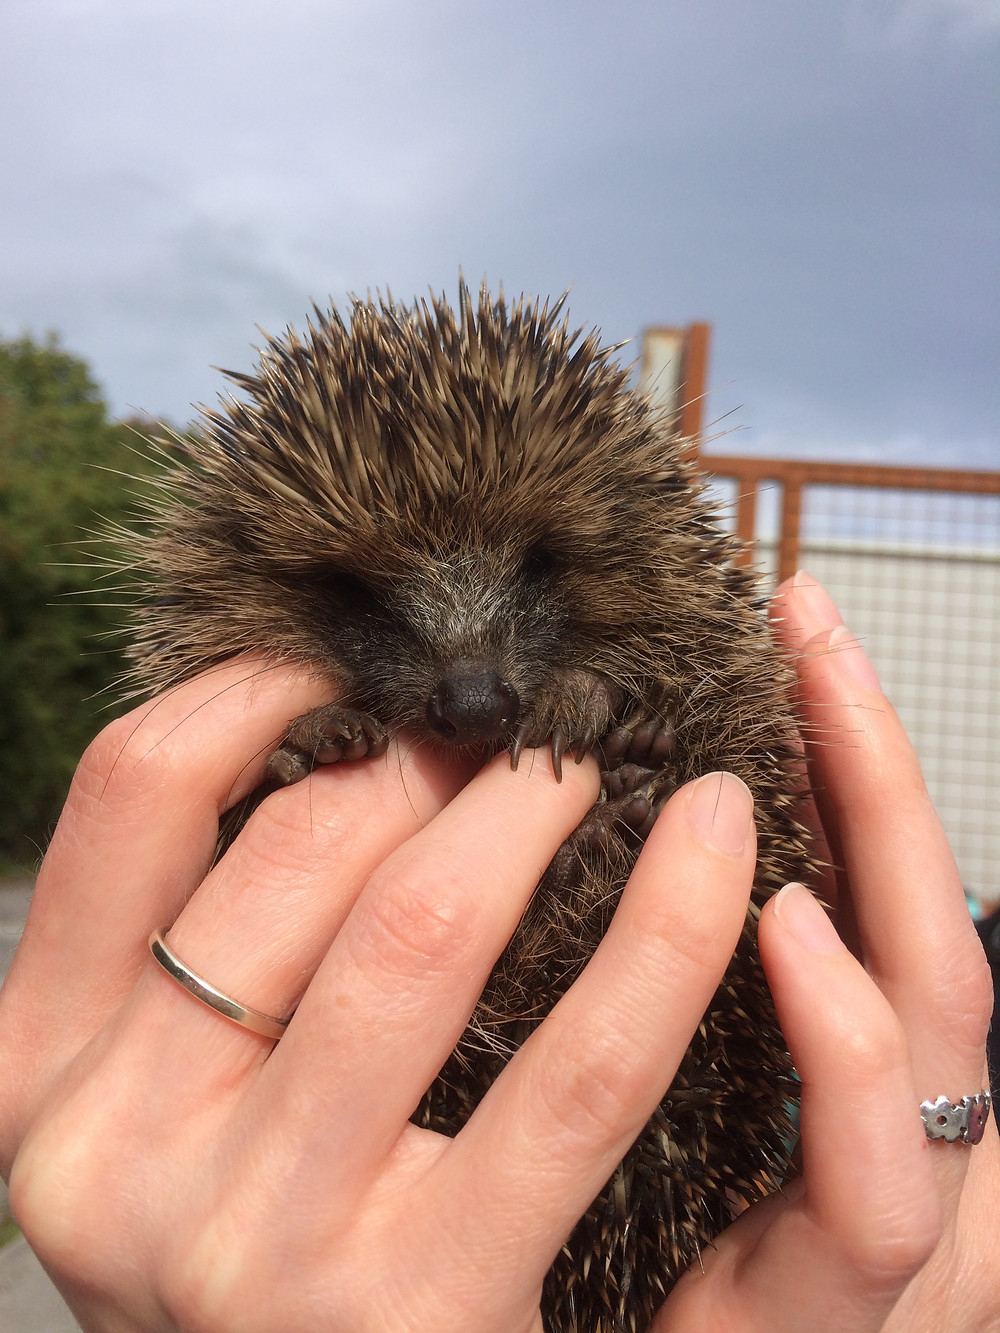 A hoglet found out in the day